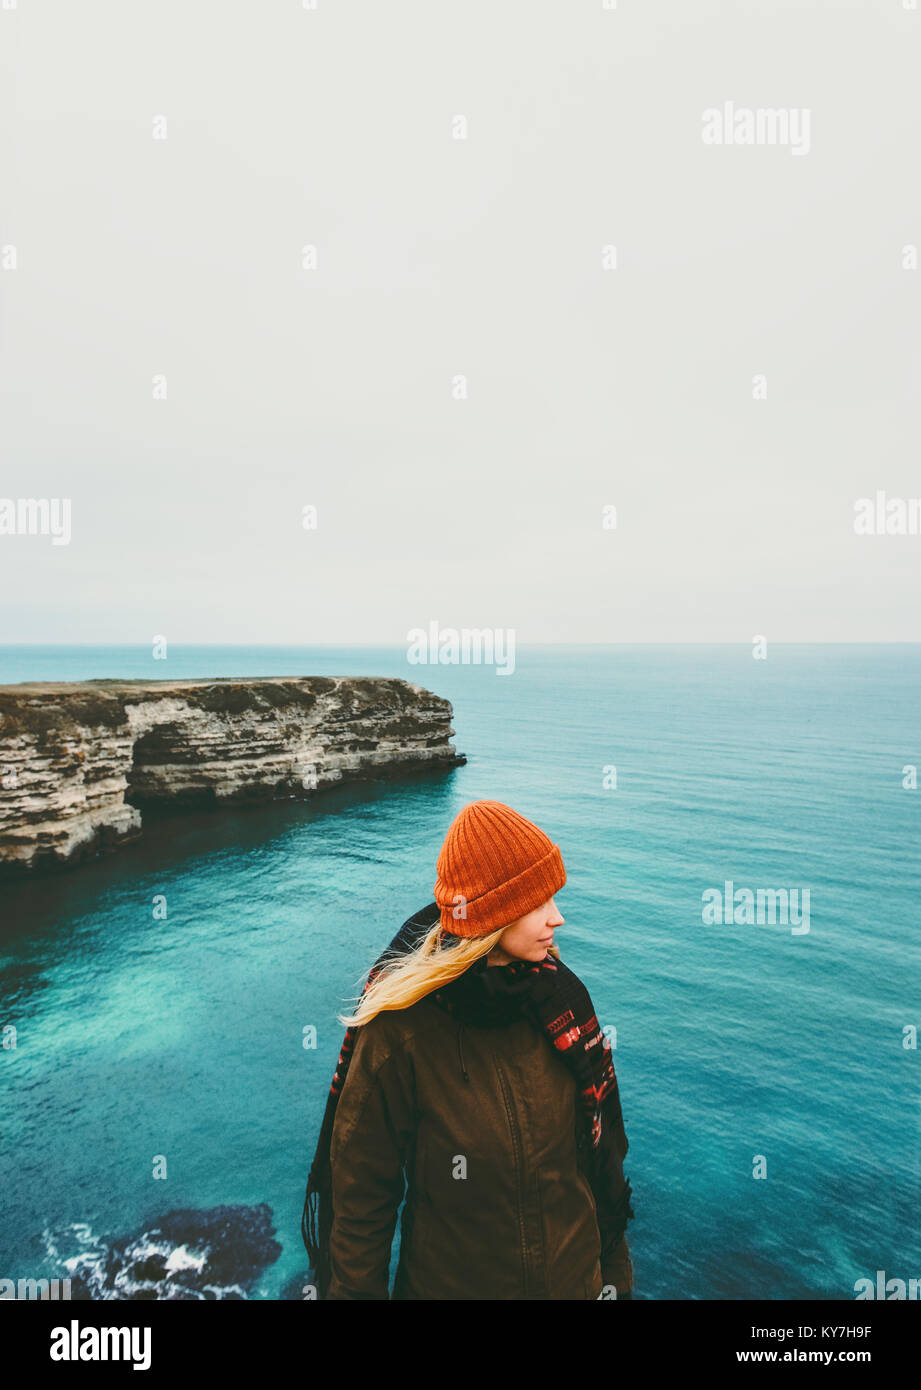 Woman walking at cold sea view alone Travel Lifestyle concept adventure vacations outdoor - Stock Image